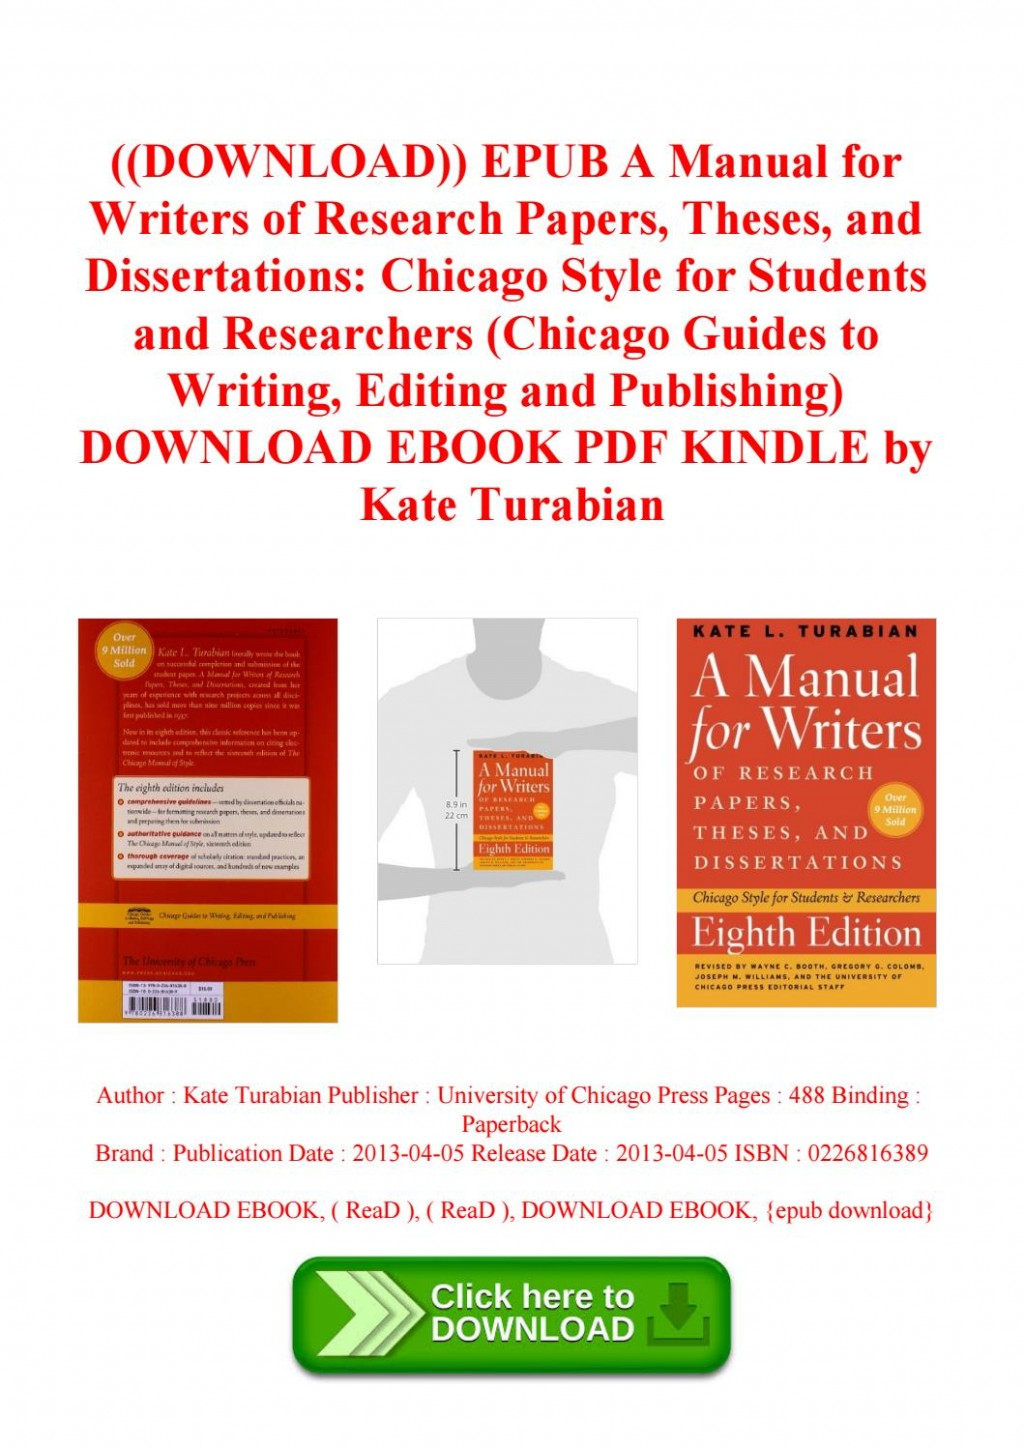 003 Page 1 Manual For Writers Of Researchs Theses And Dissertations Magnificent Research Papers A 8th Ed Pdf Large